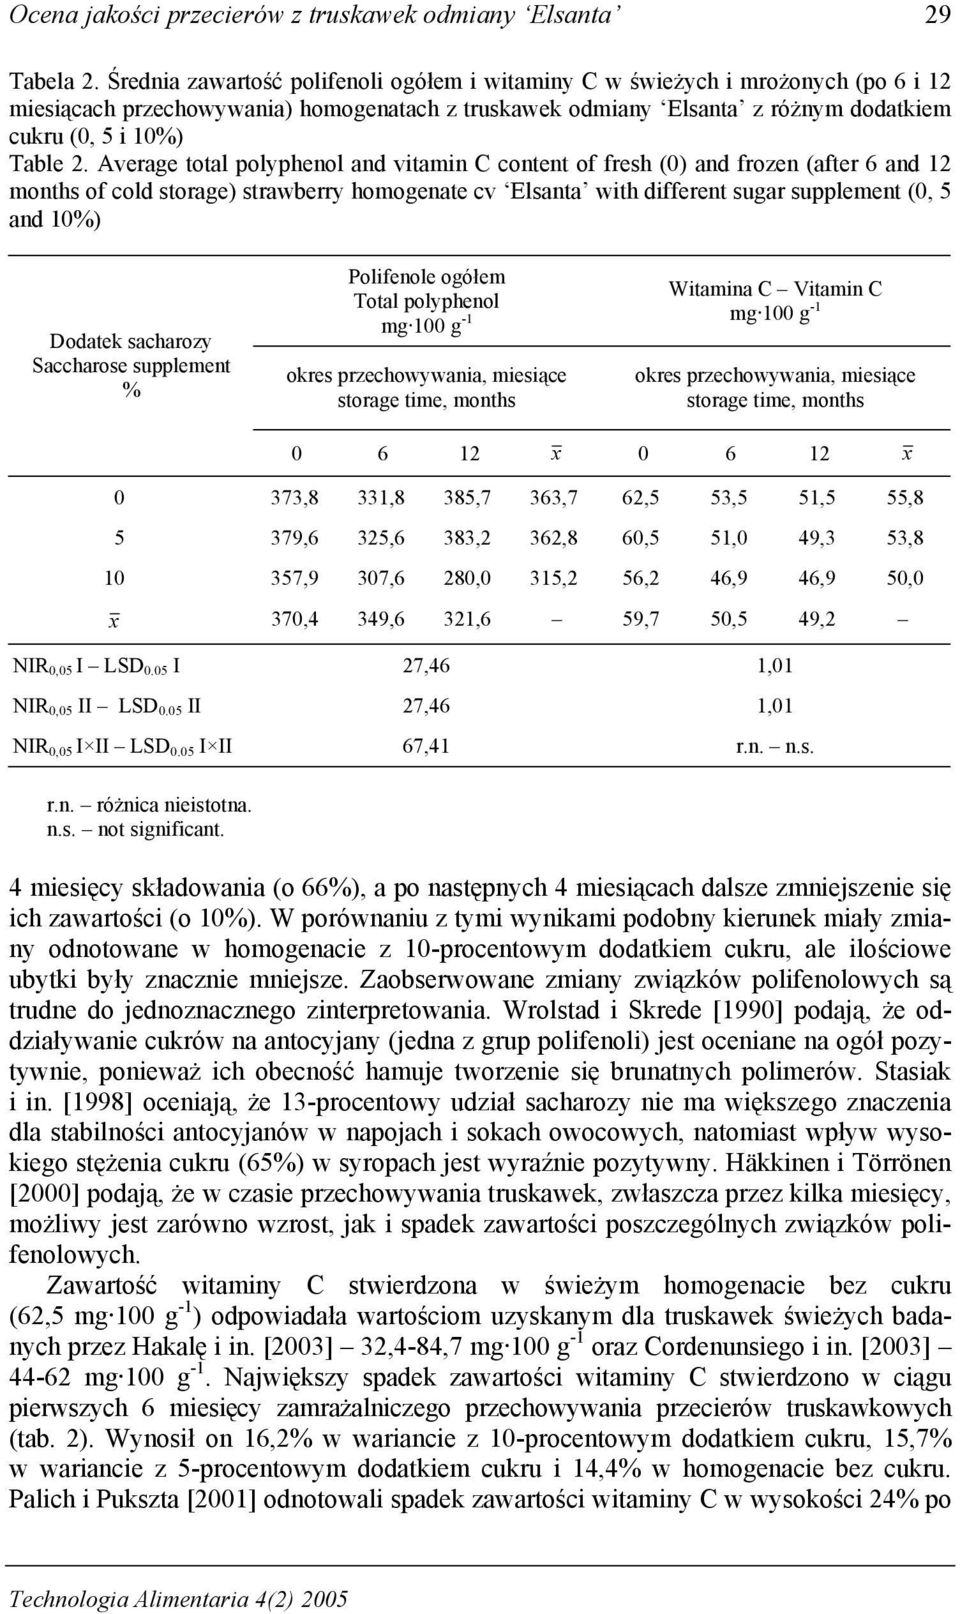 Average total polyphenol and vitamin C content of fresh (0) and frozen (after 6 and 12 months of cold storage) strawberry homogenate cv Elsanta with different sugar supplement (0, 5 and 10%) Dodatek